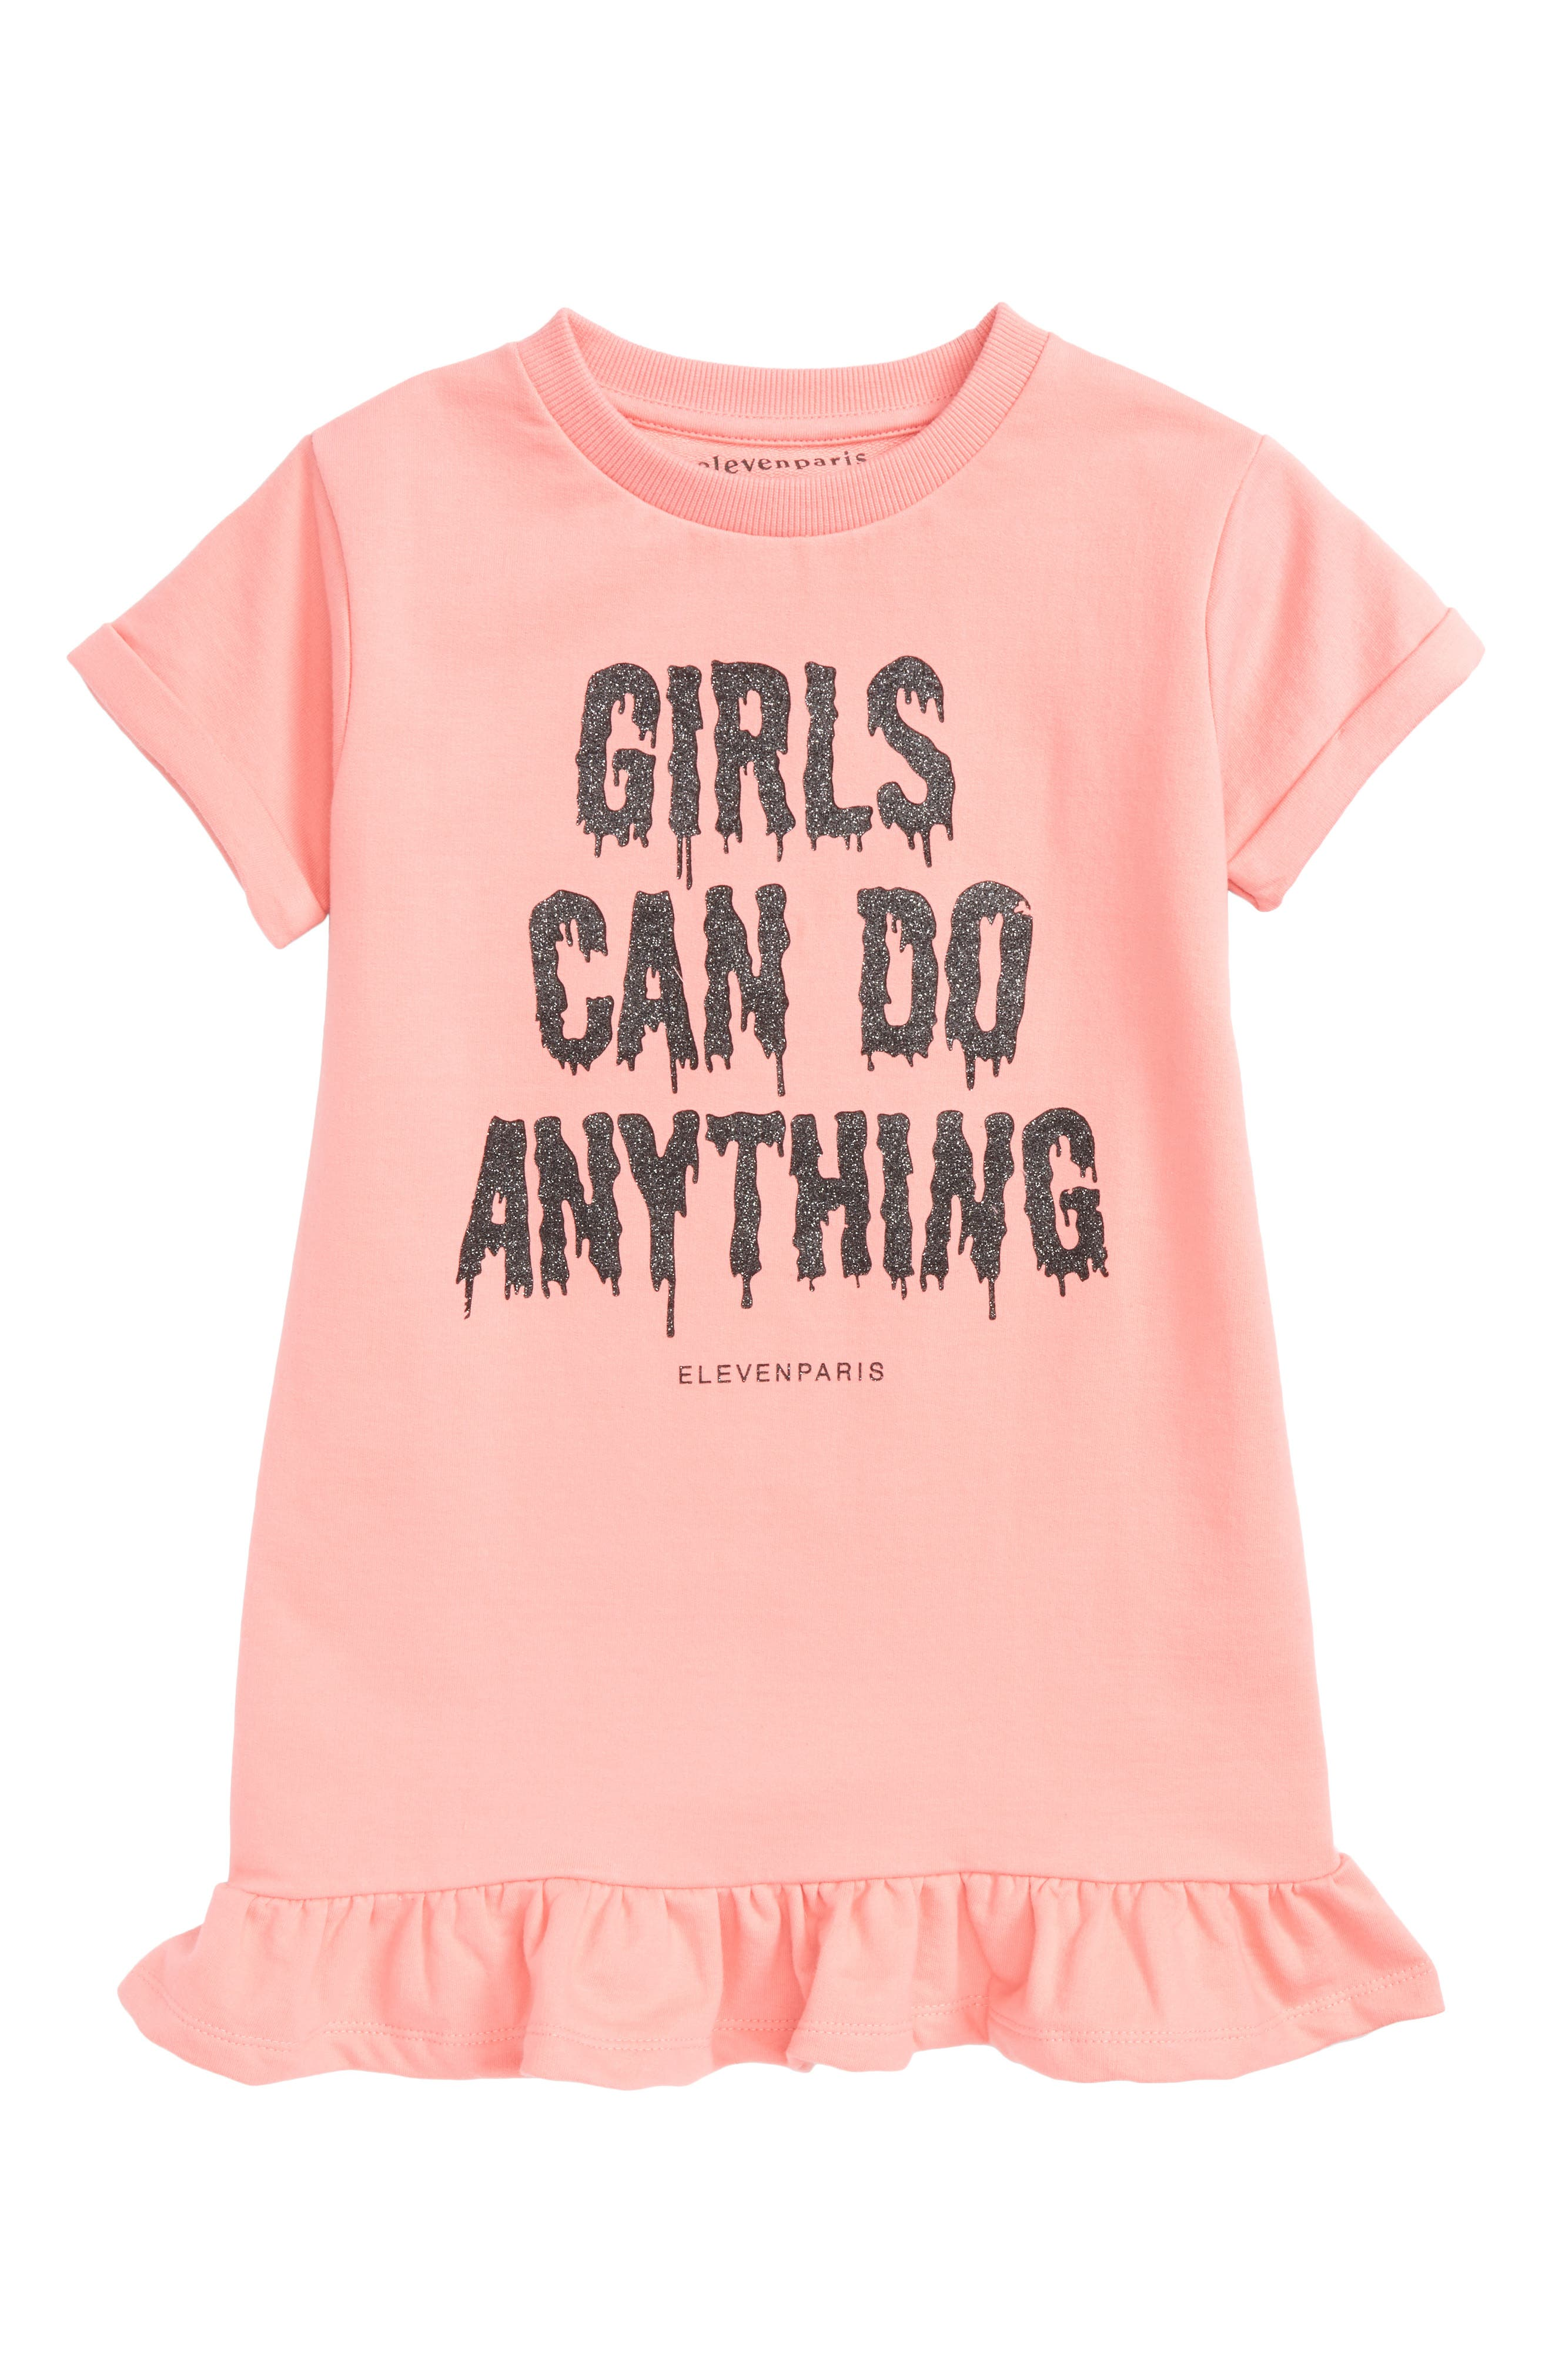 Girls Can Do Anything Graphic Dress,                         Main,                         color, 650